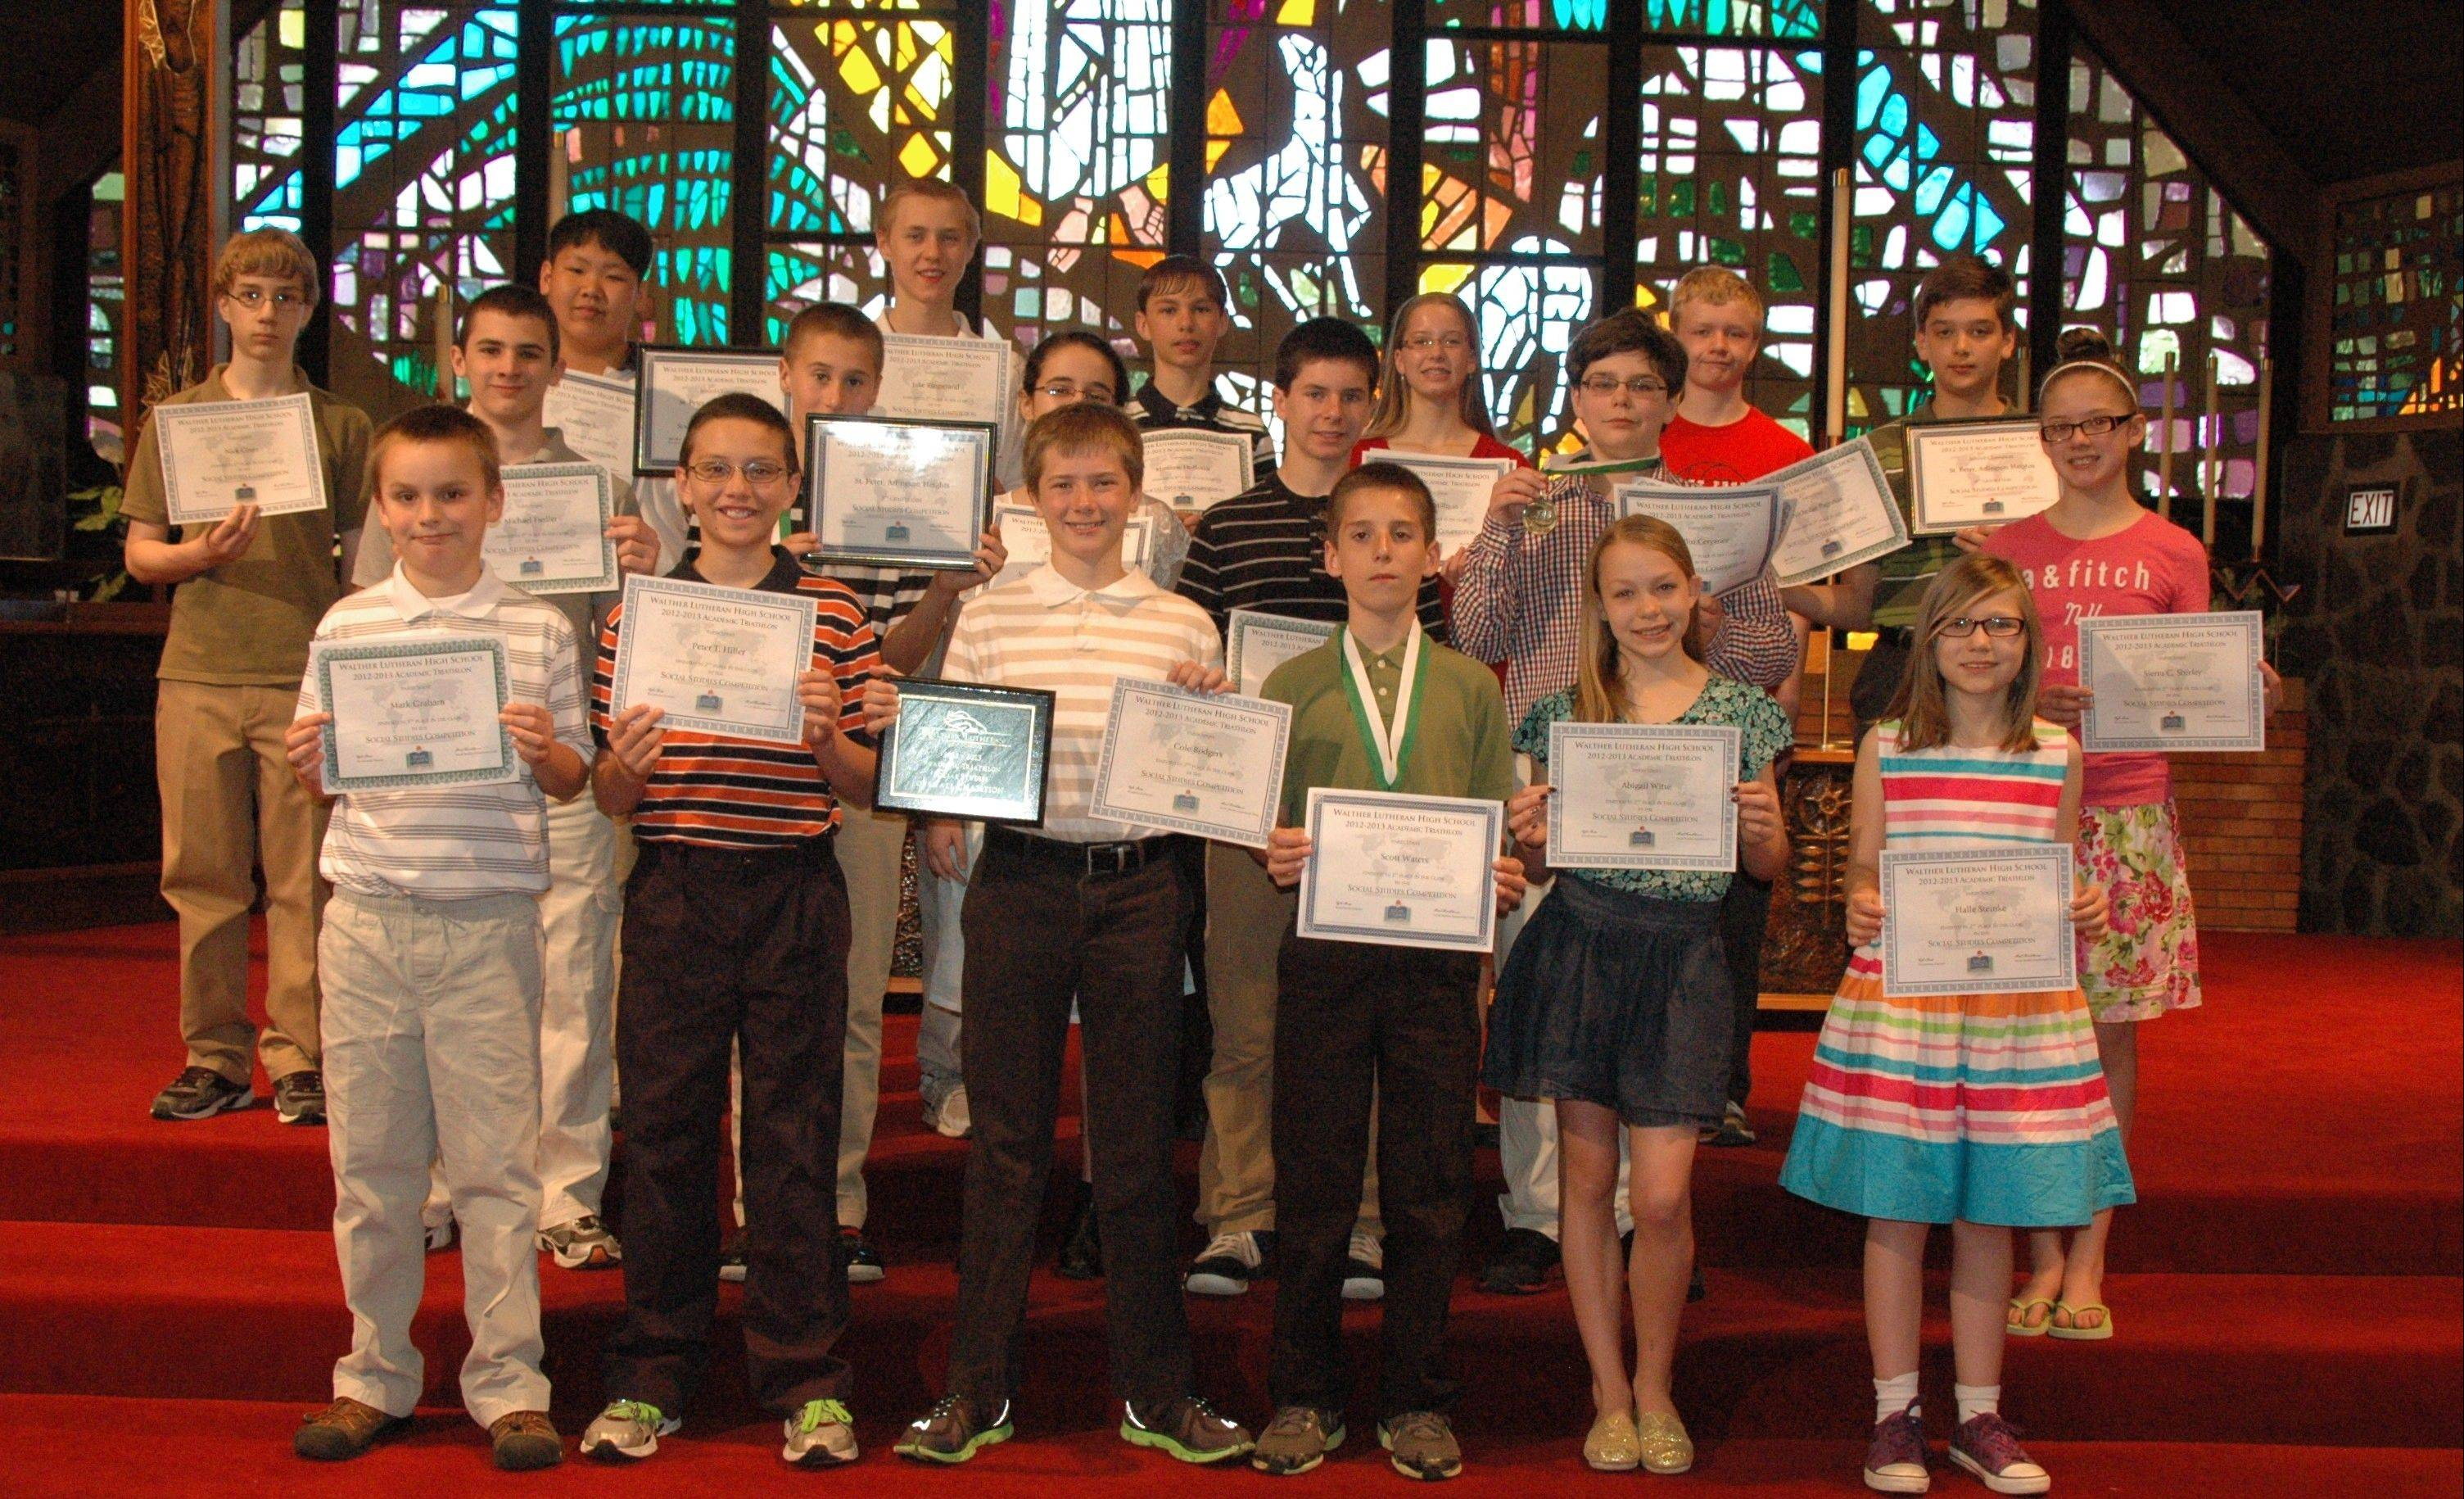 Students from St. Peter Lutheran School, in Arlington Heights. The school brought home top honors in social studies at the recent Walther High School Academic Triathlon.